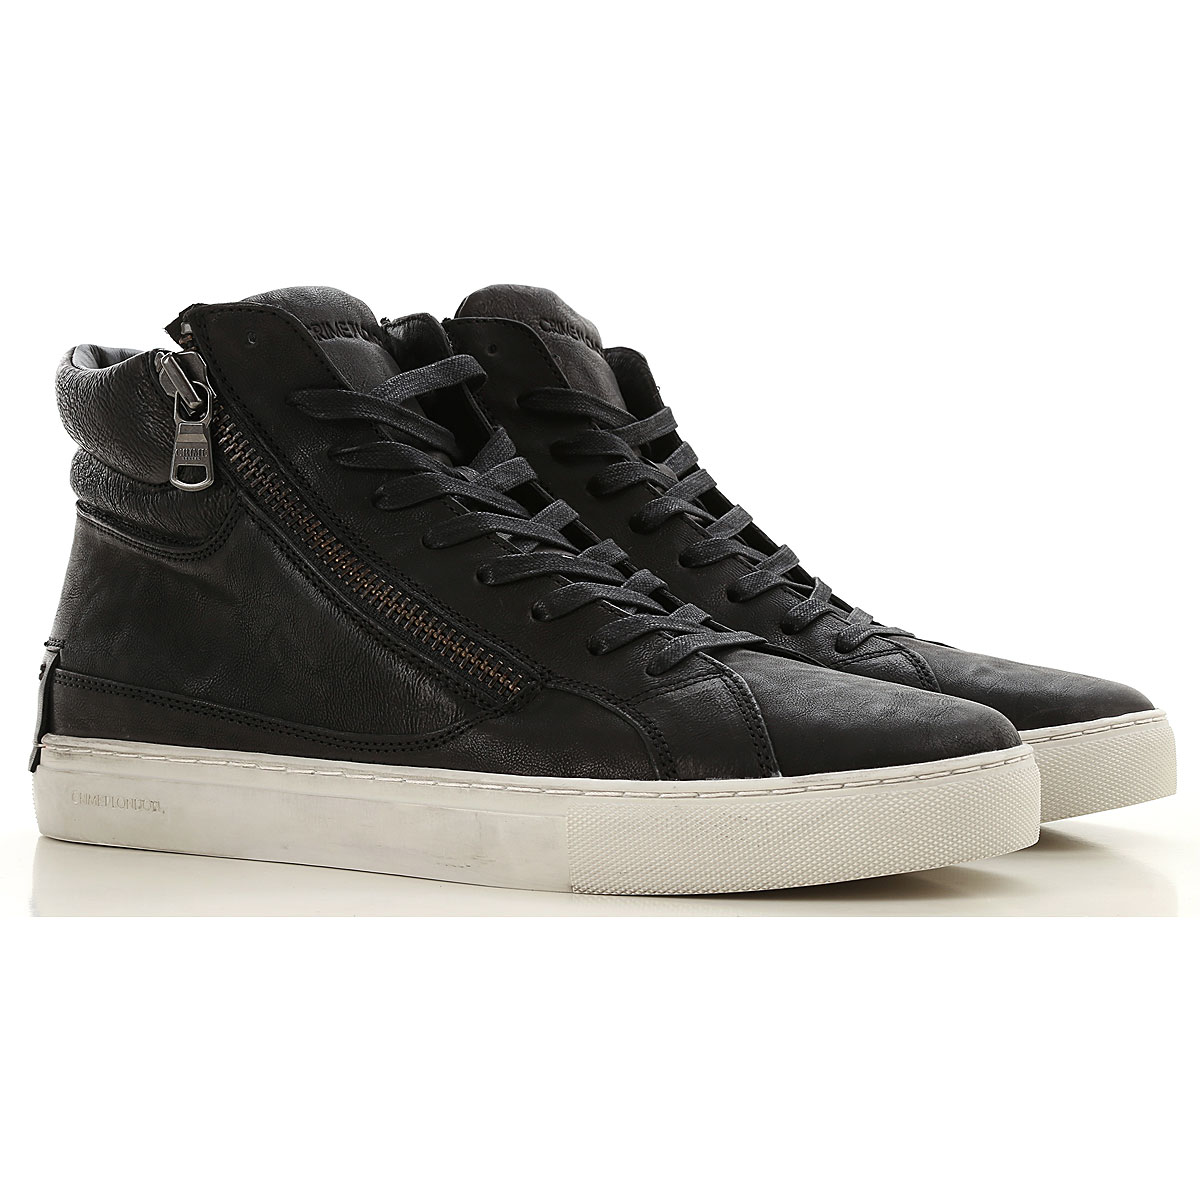 Image of Crime Sneakers for Men, Black, Leather, 2017, 10 10.5 11.5 7.5 8 9